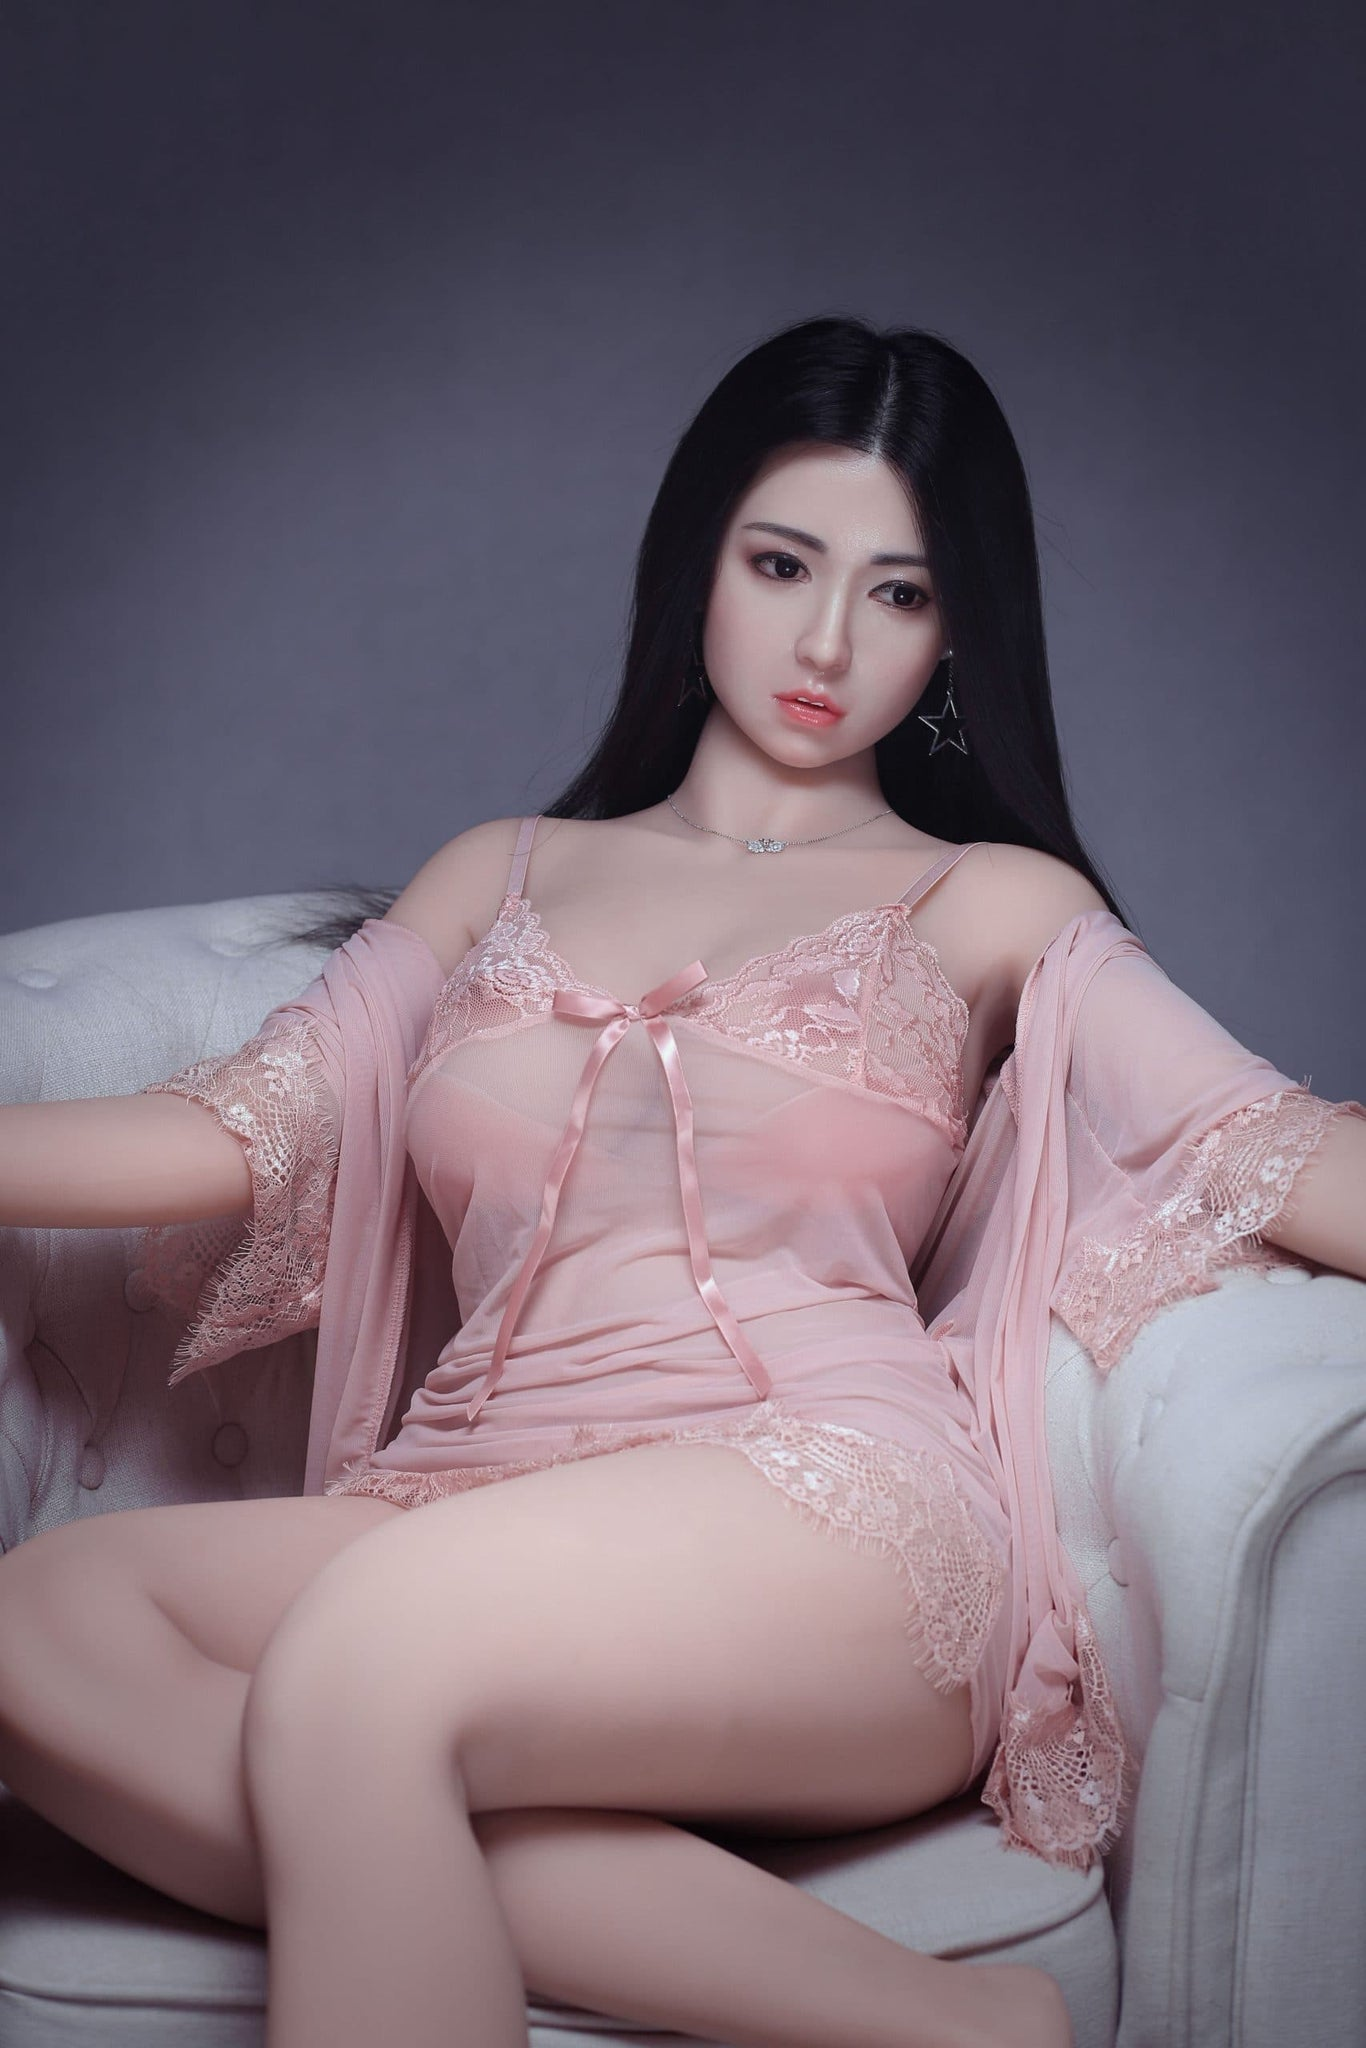 troja 161cm af black hair curvy big boobs athletic best tpe sex doll(4)